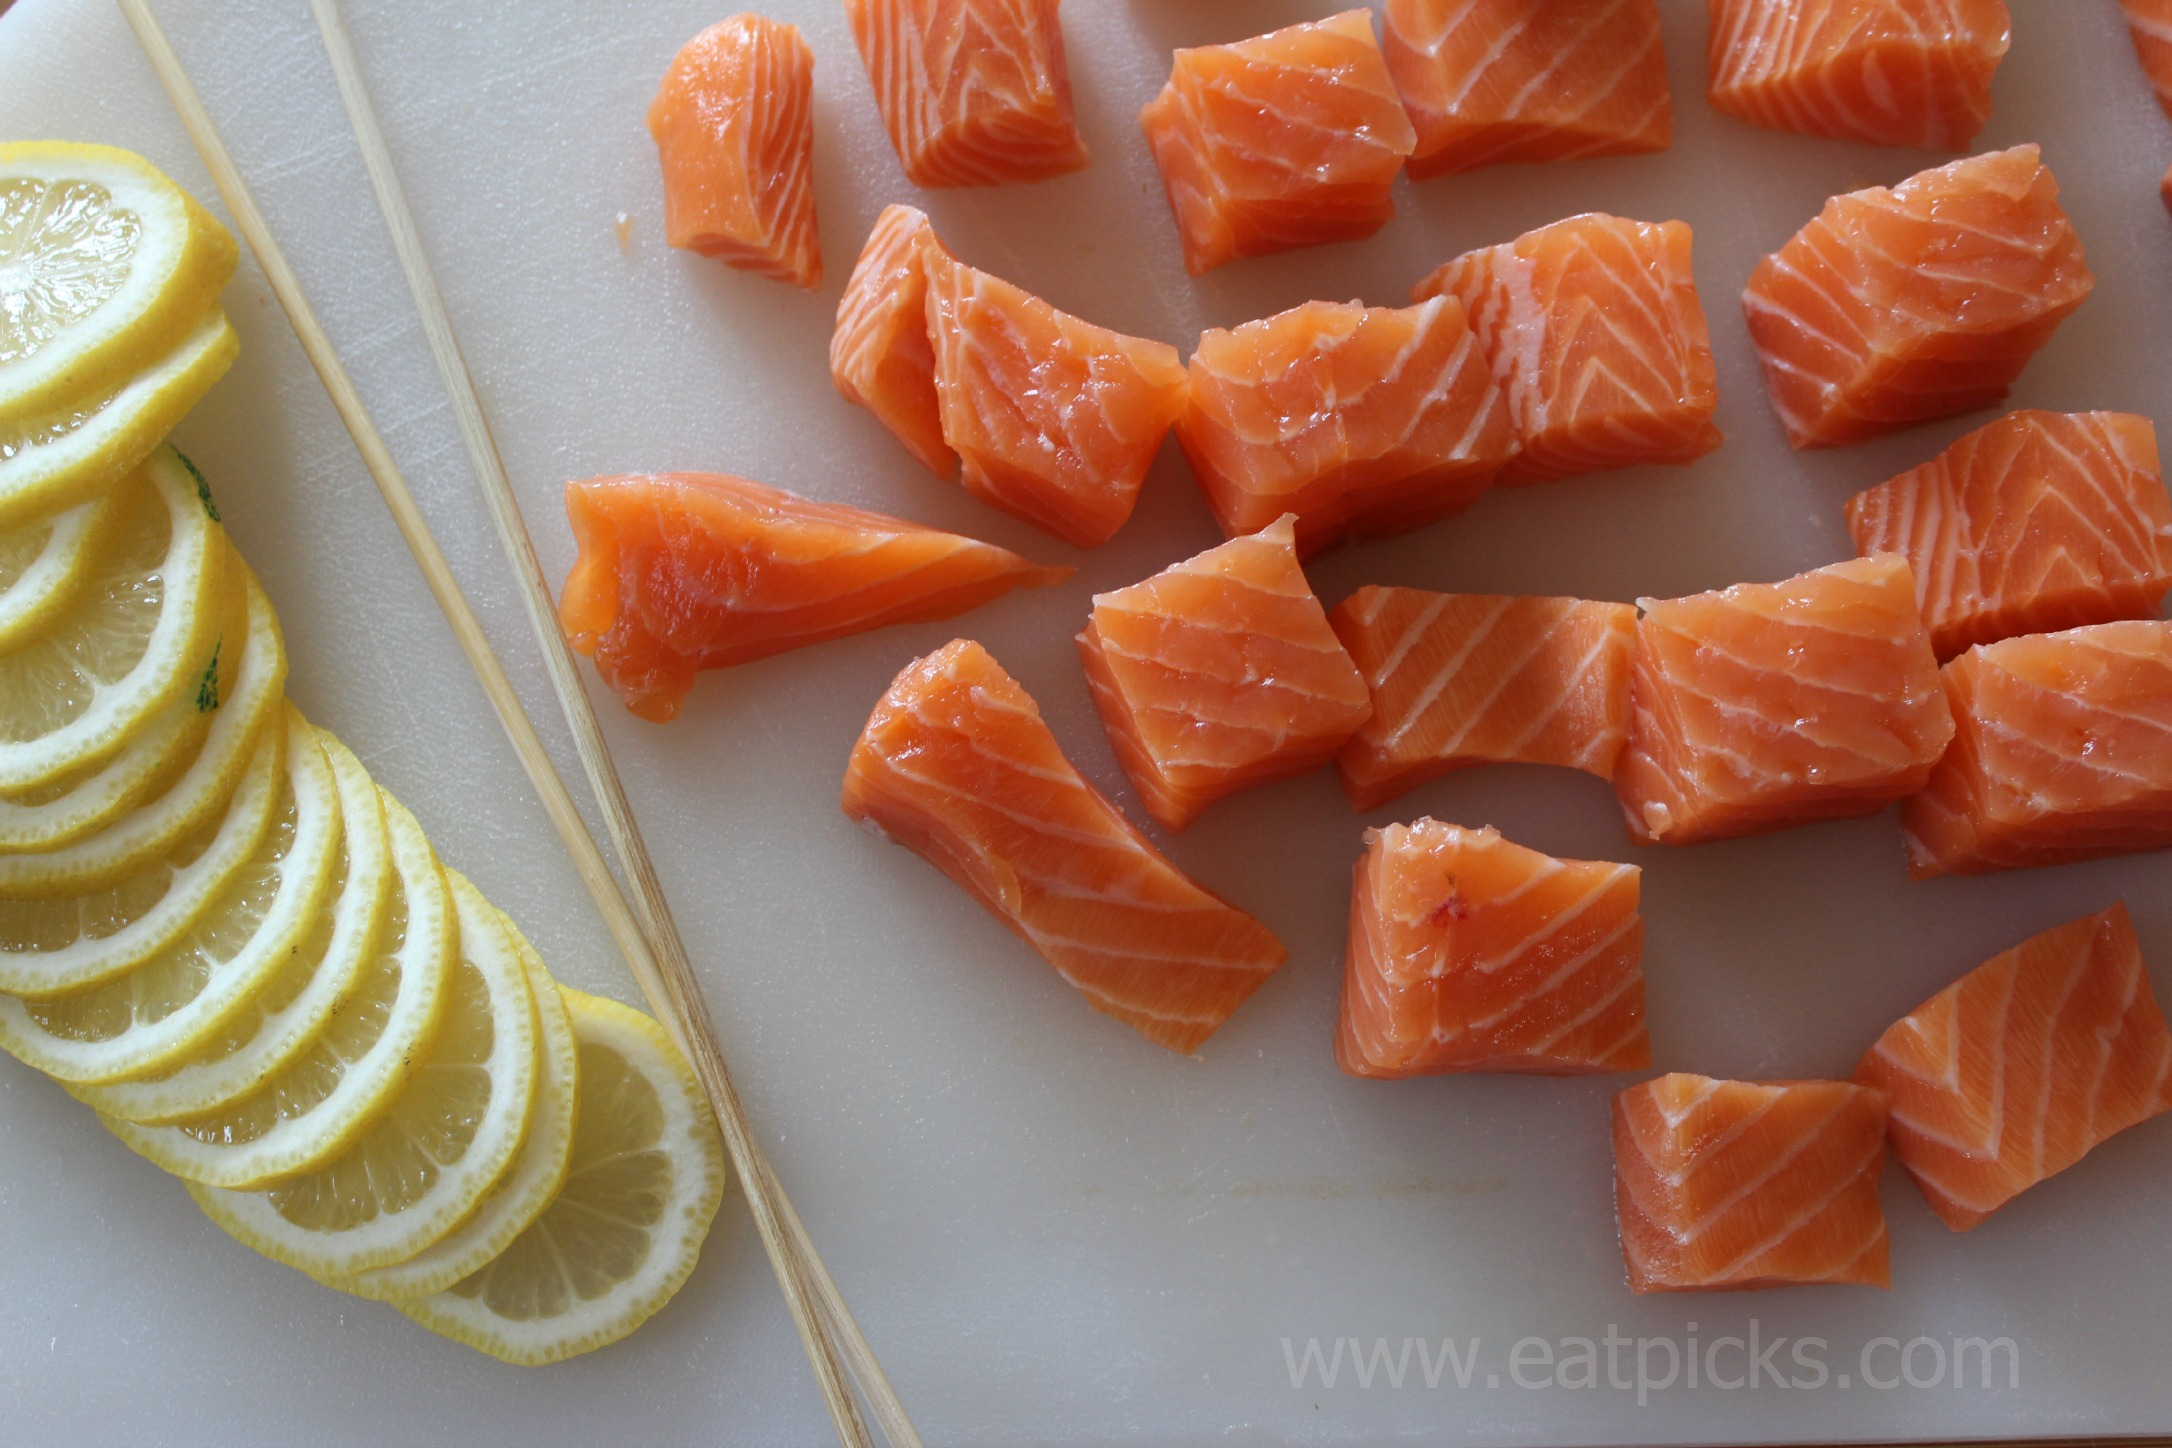 salmon and lemon slices